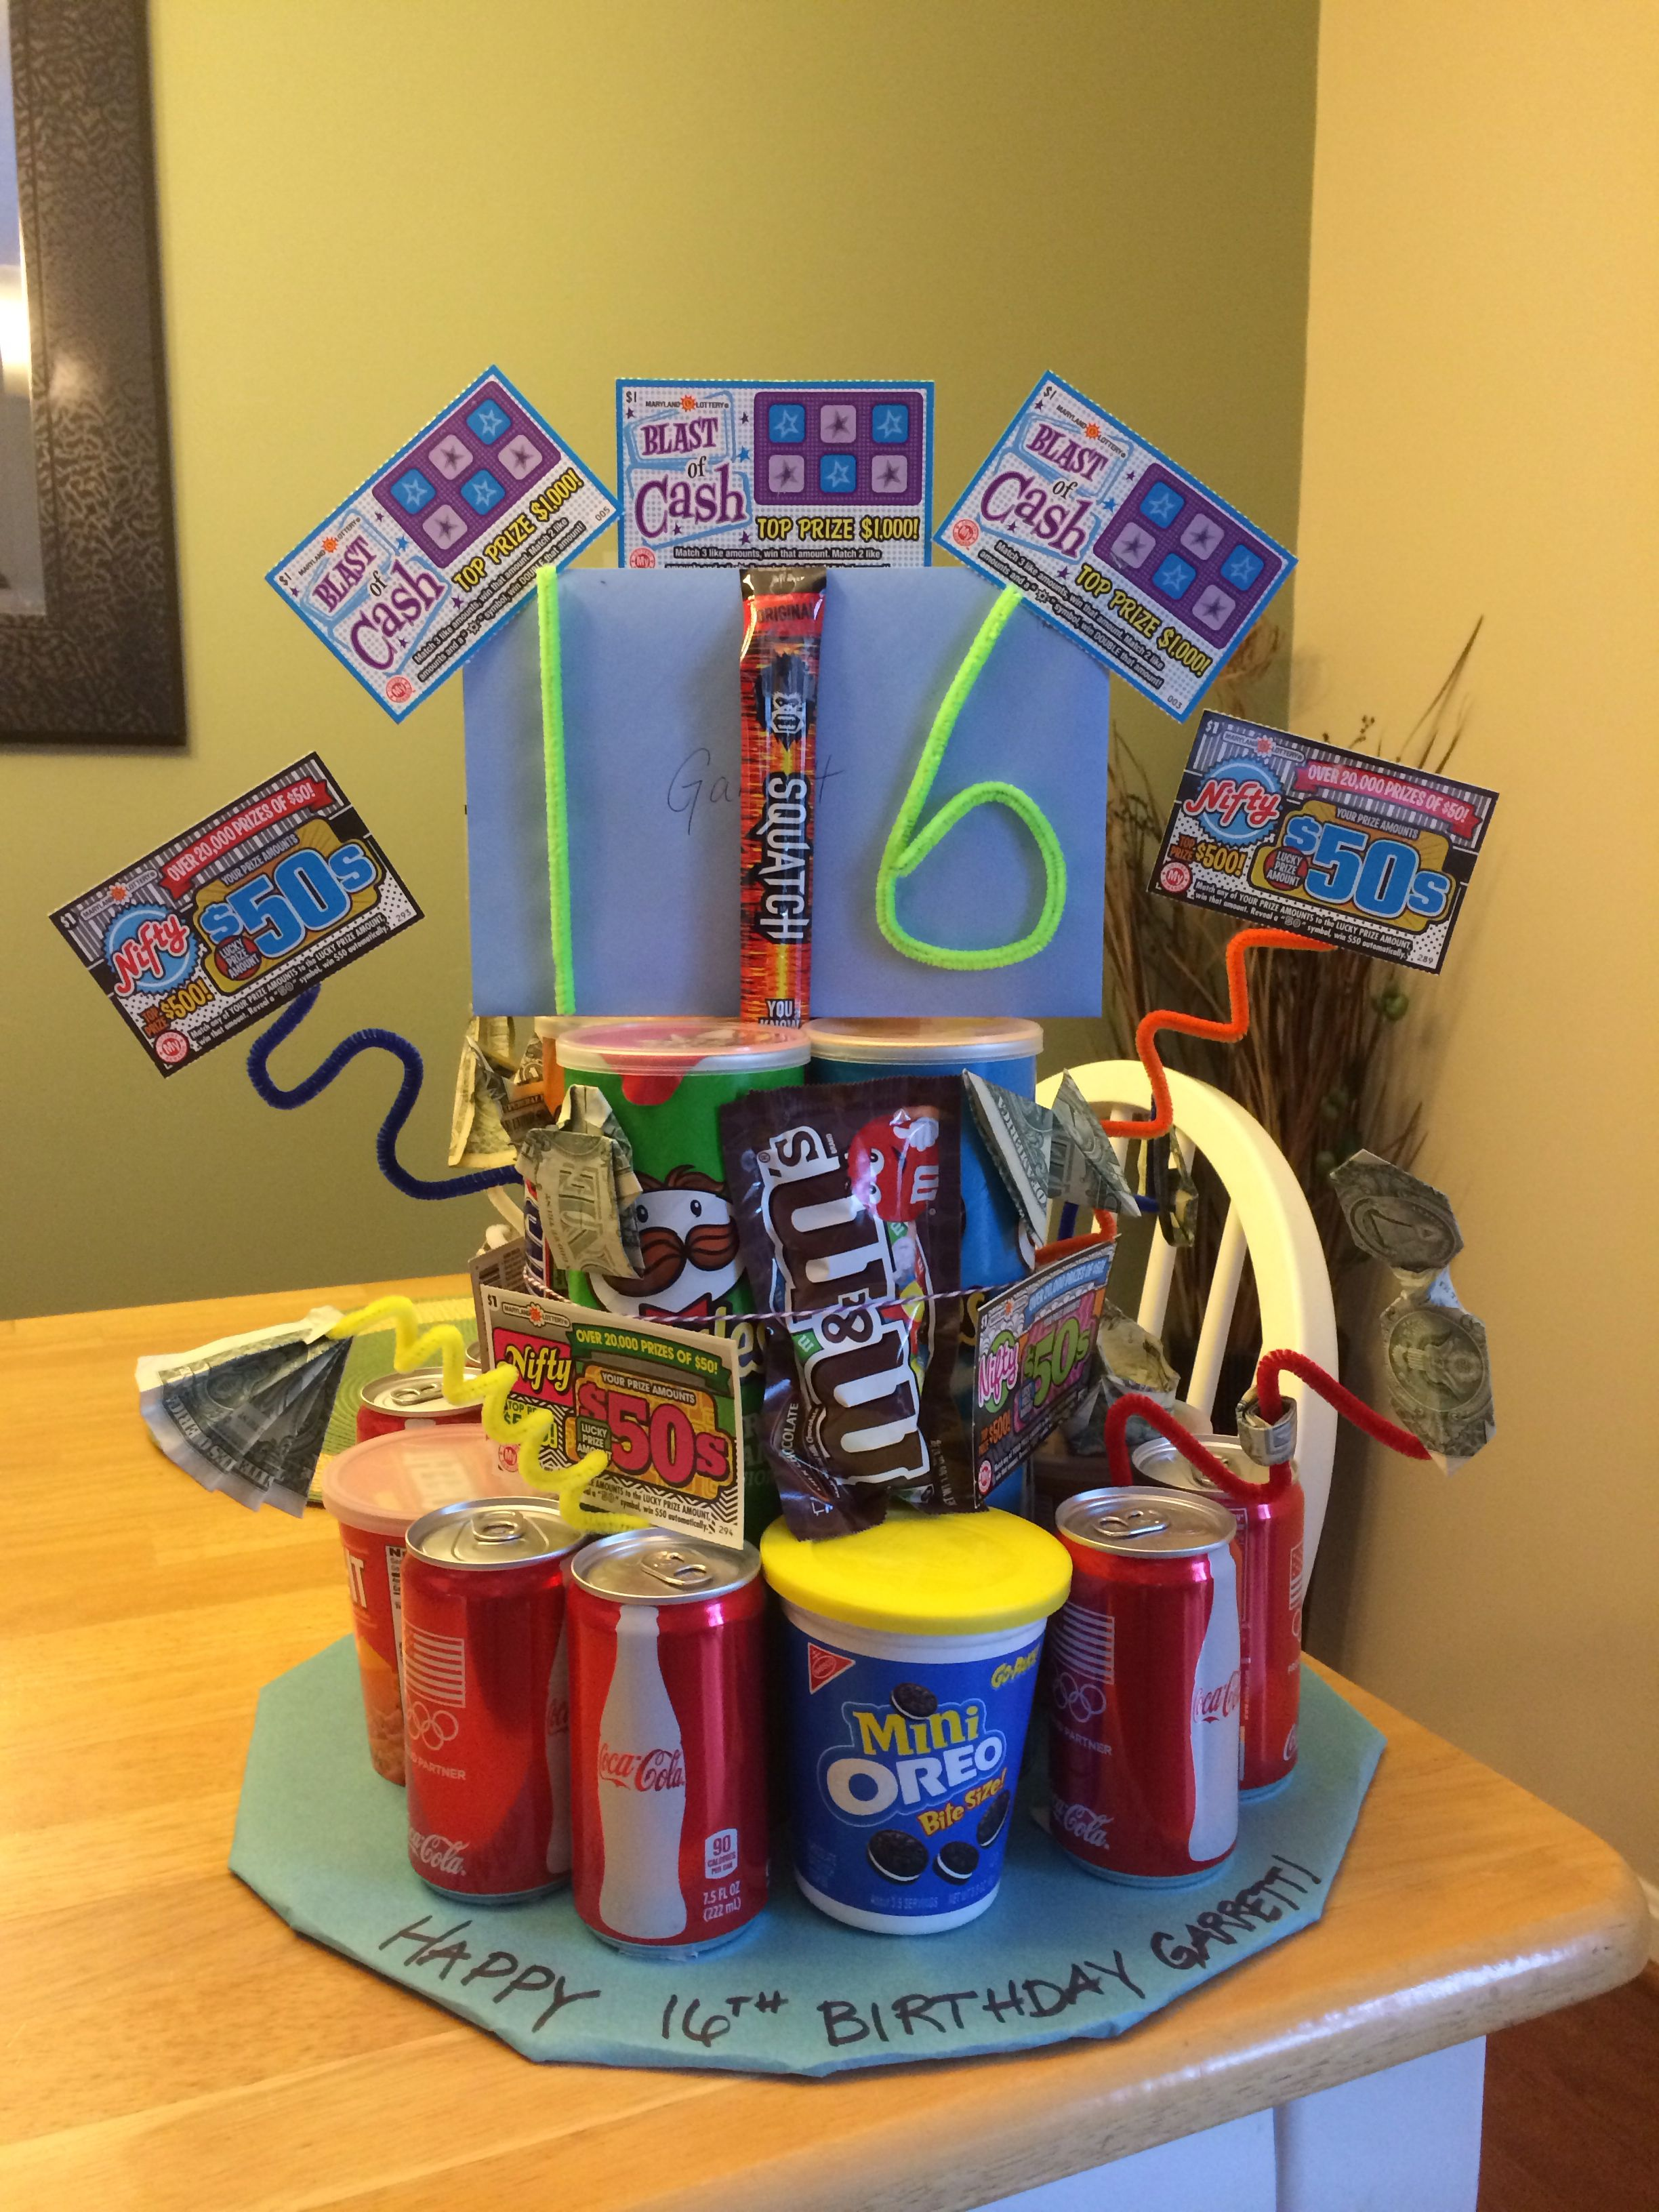 16th Birthday Cake For Boy Pringles Soda Cookies Lotto Tix